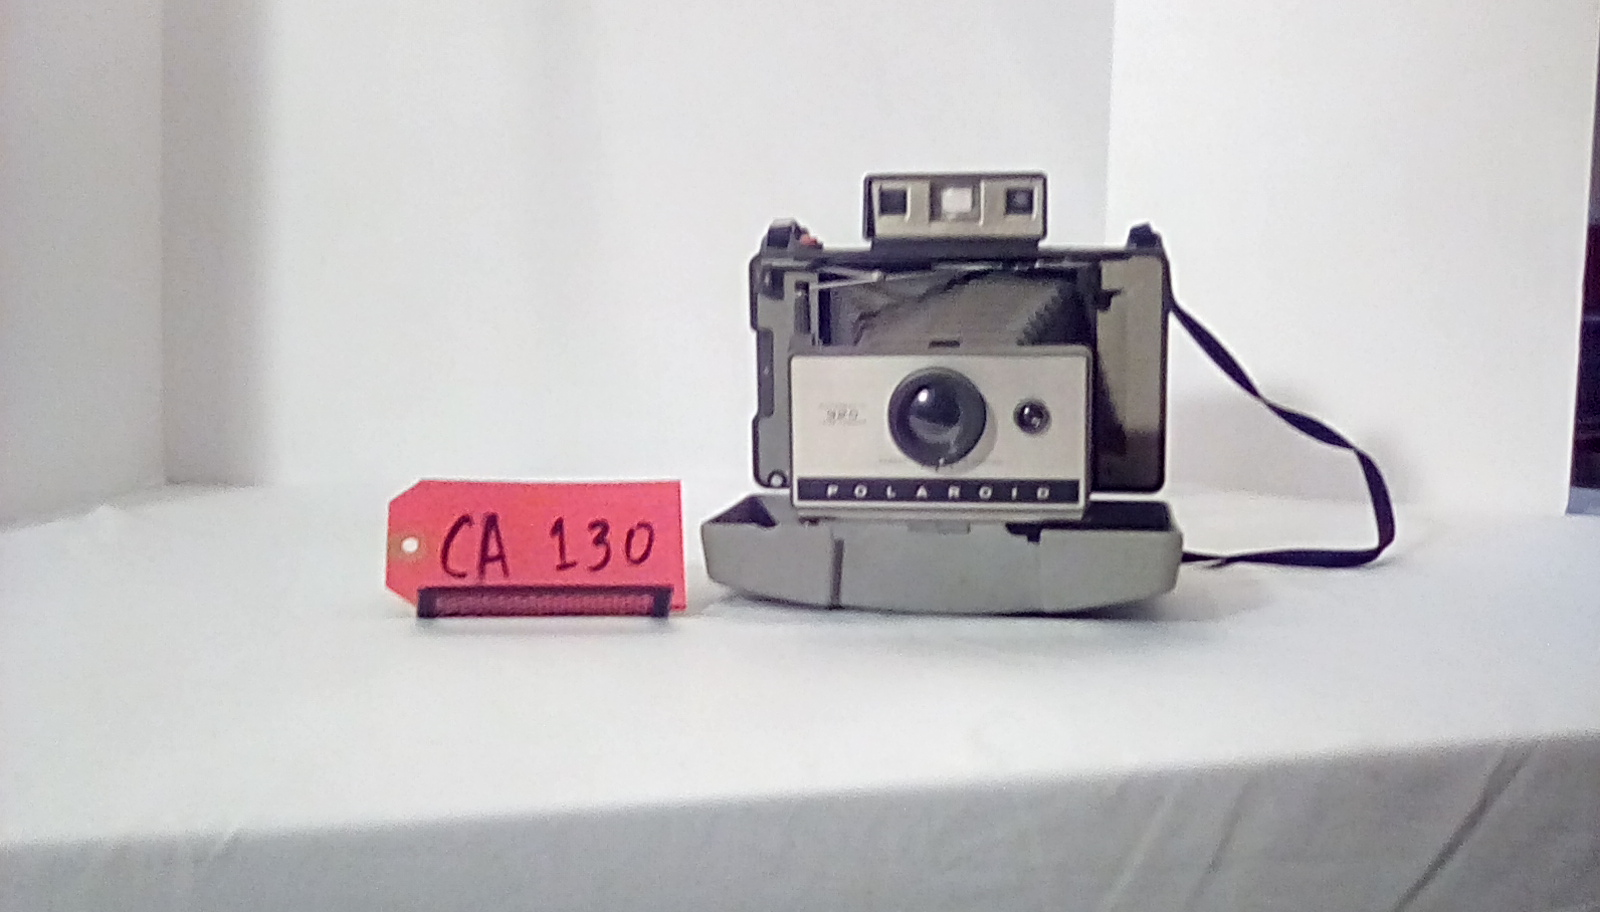 CA130 Polaroid Automatic 320 Land camera, accordion bellows, case and strap are attached to camera